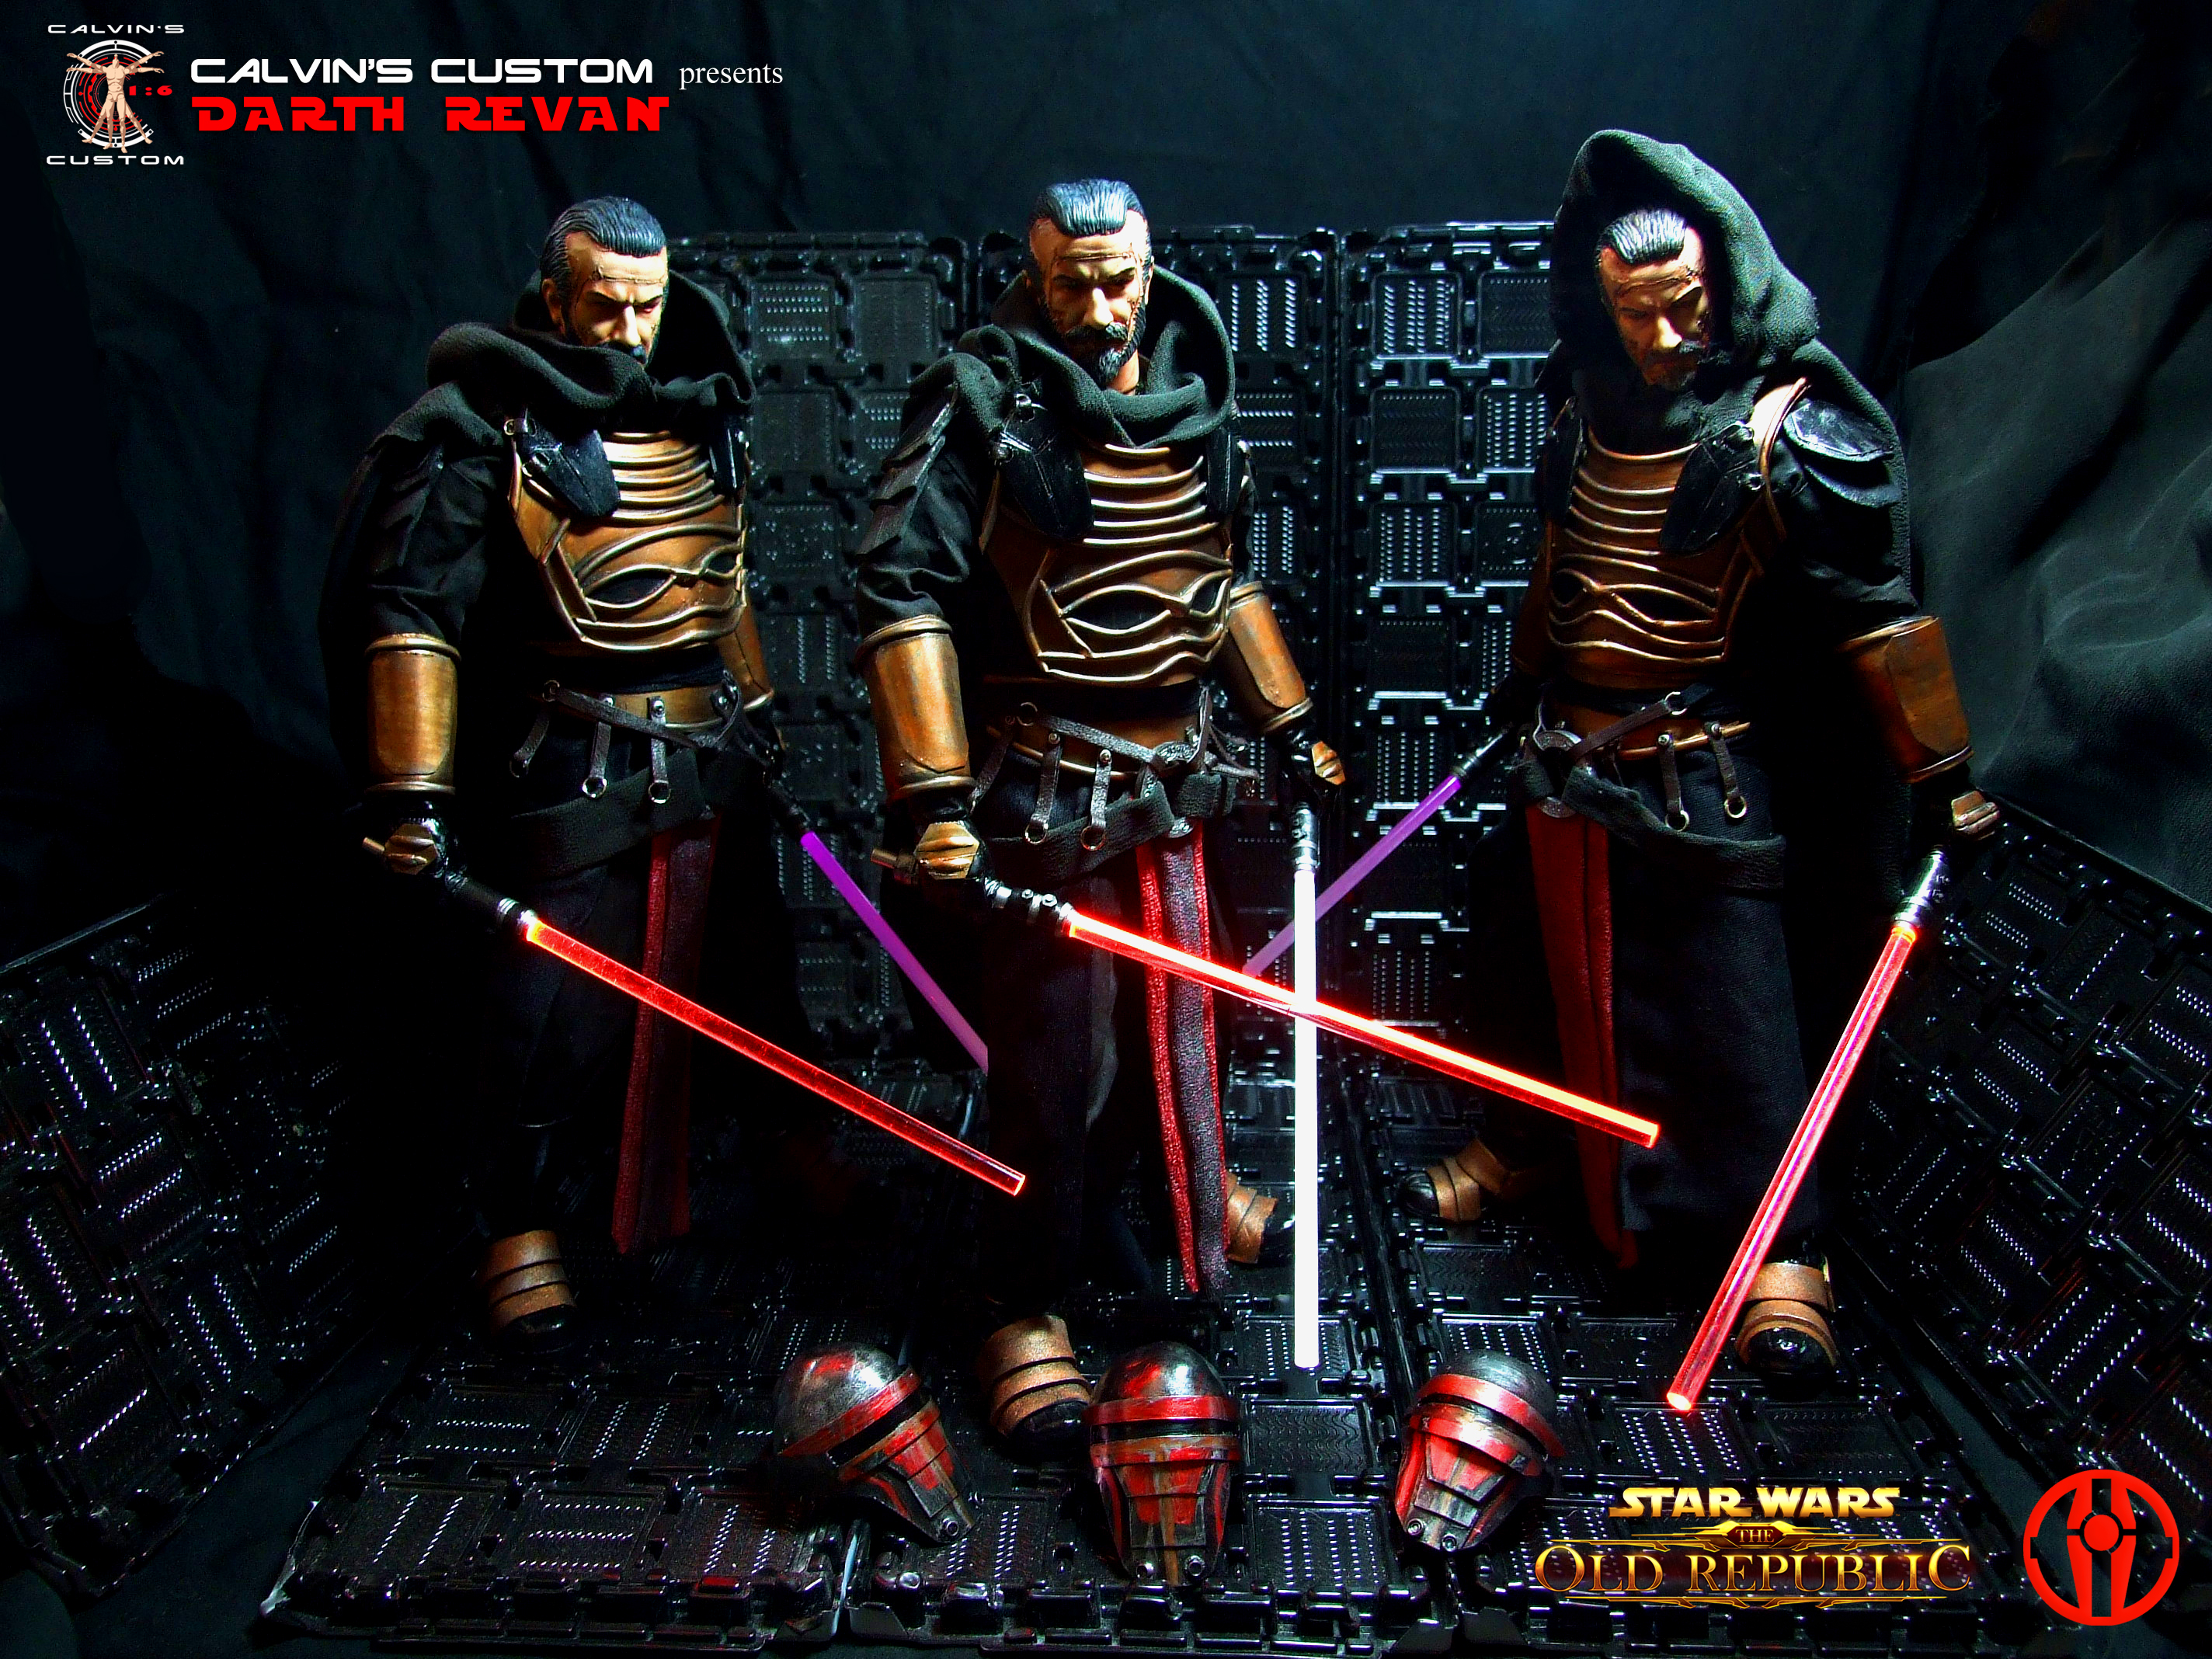 Calvin s Custom one sixth scale SWTOR Darth Revan Figures star wars 38038778 2848 2136